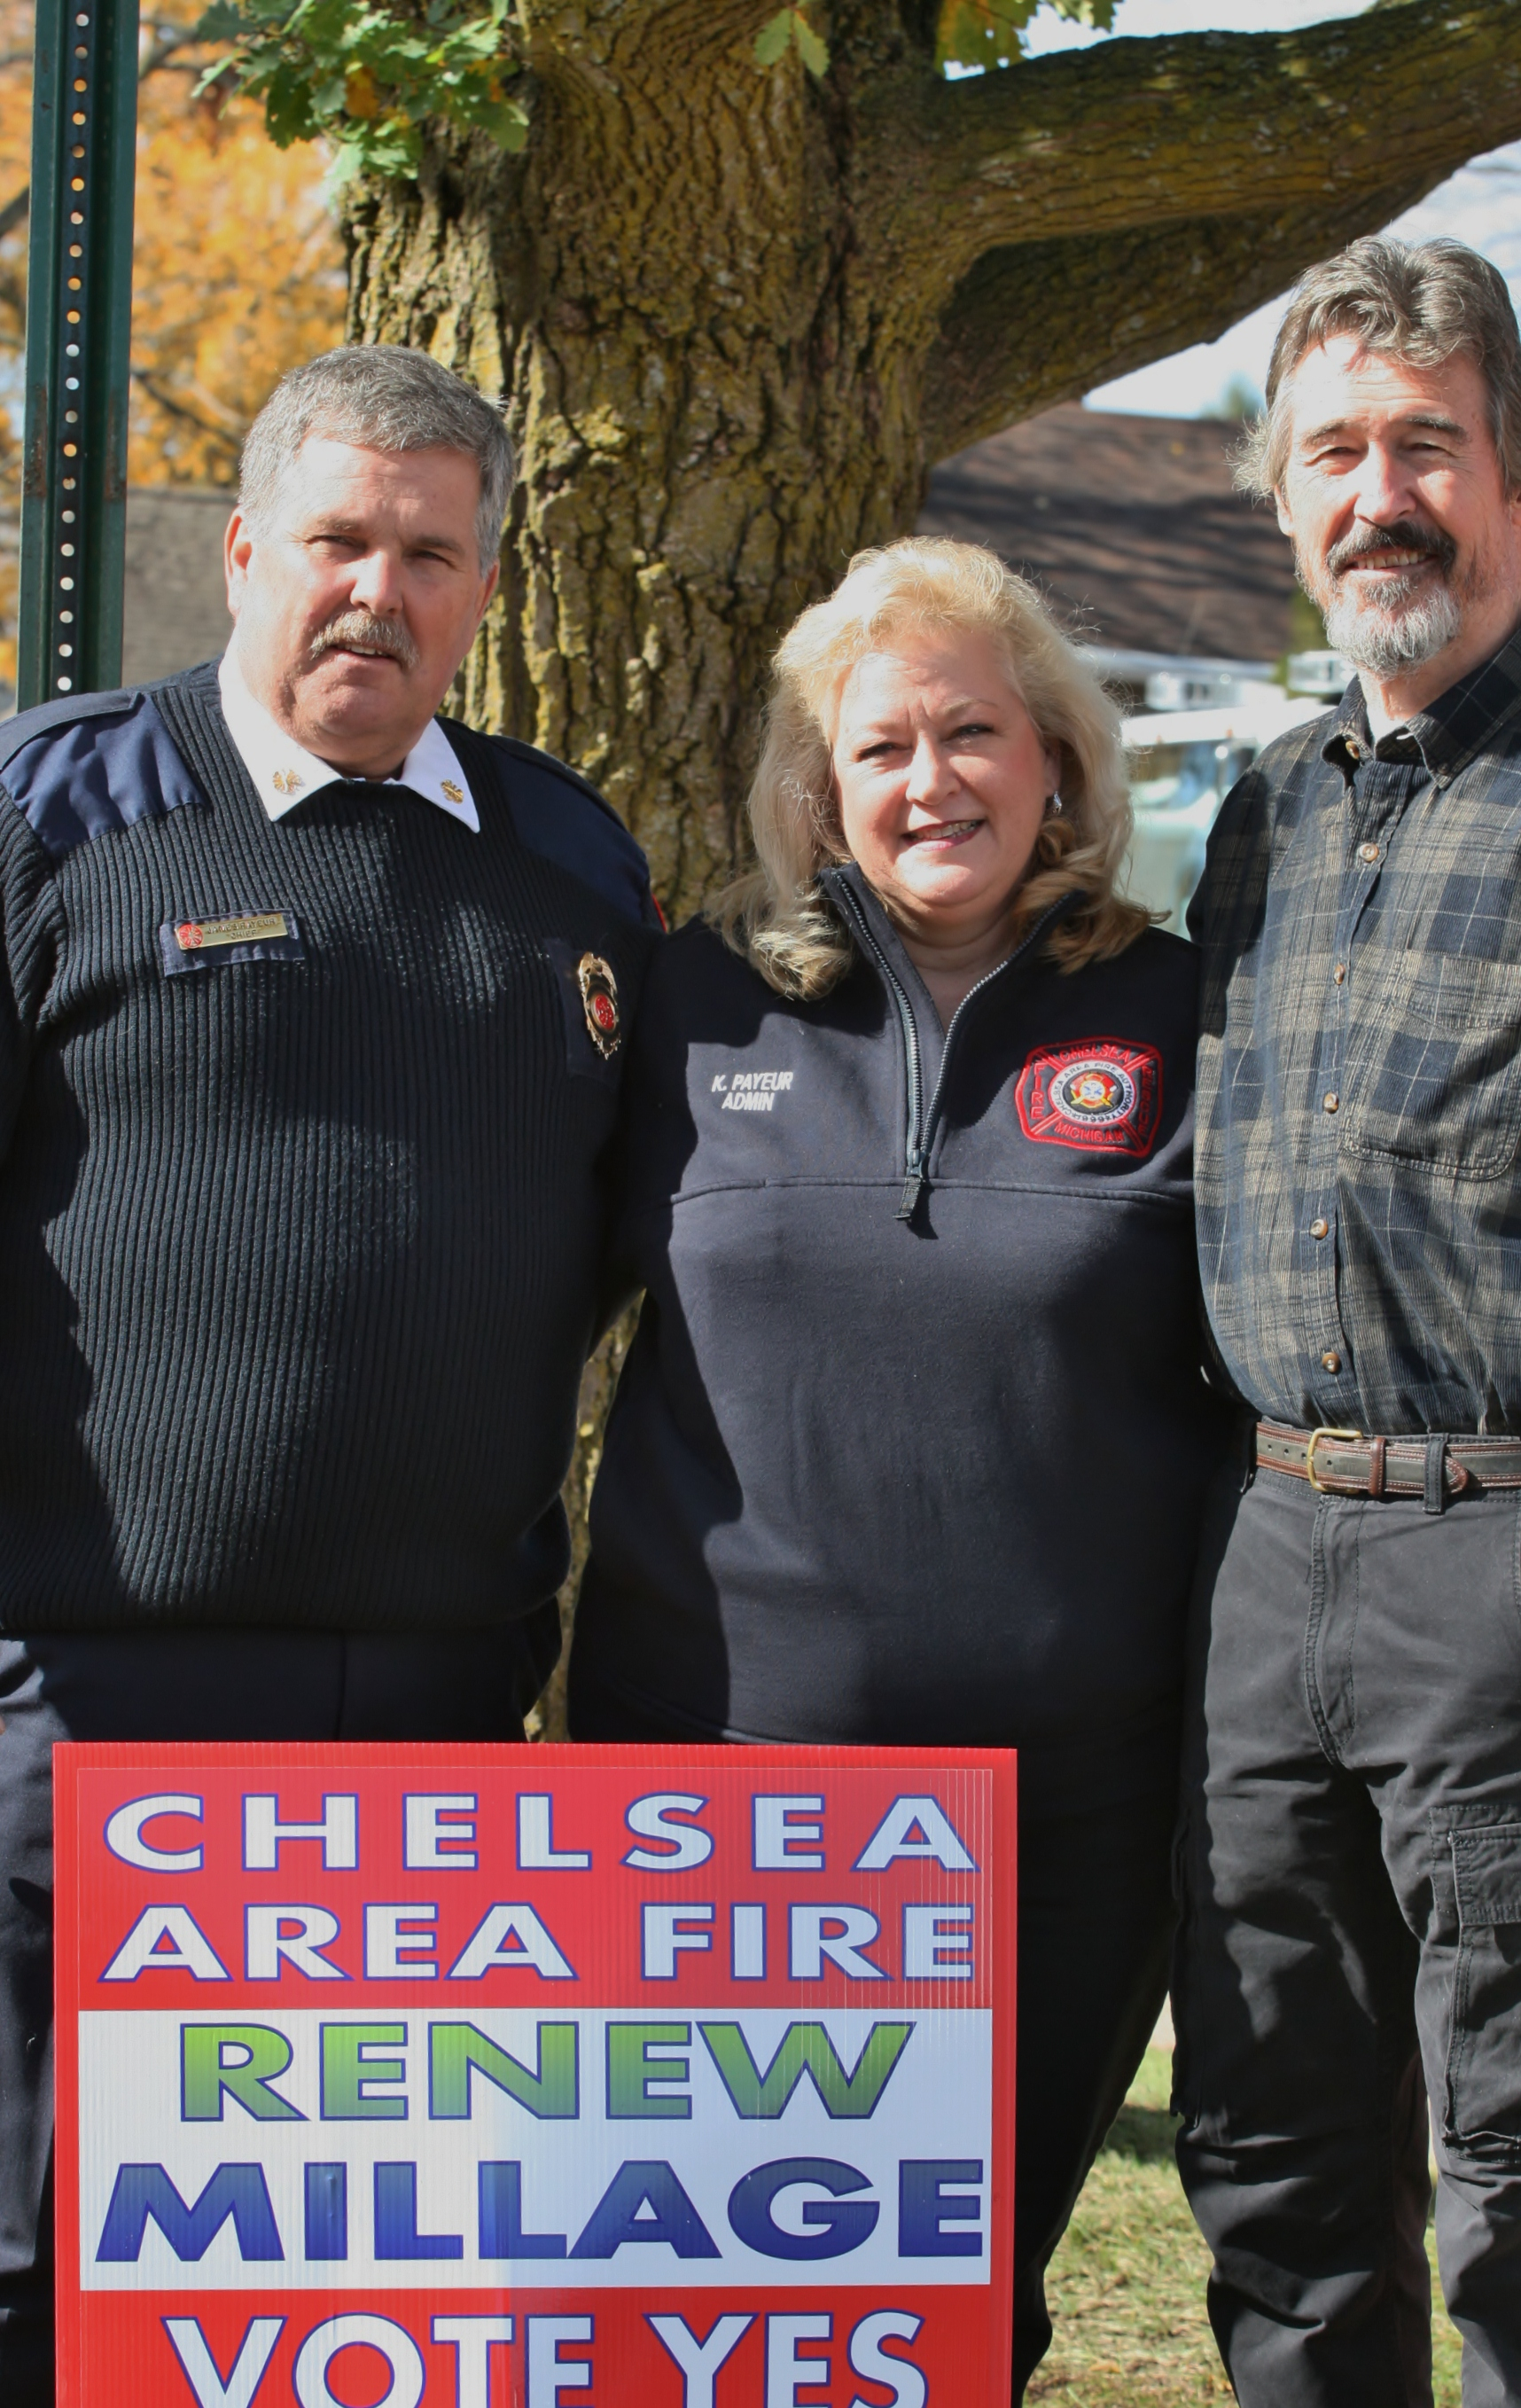 Read more about Randy's visit to the Fire Station at ChelseaUpdate